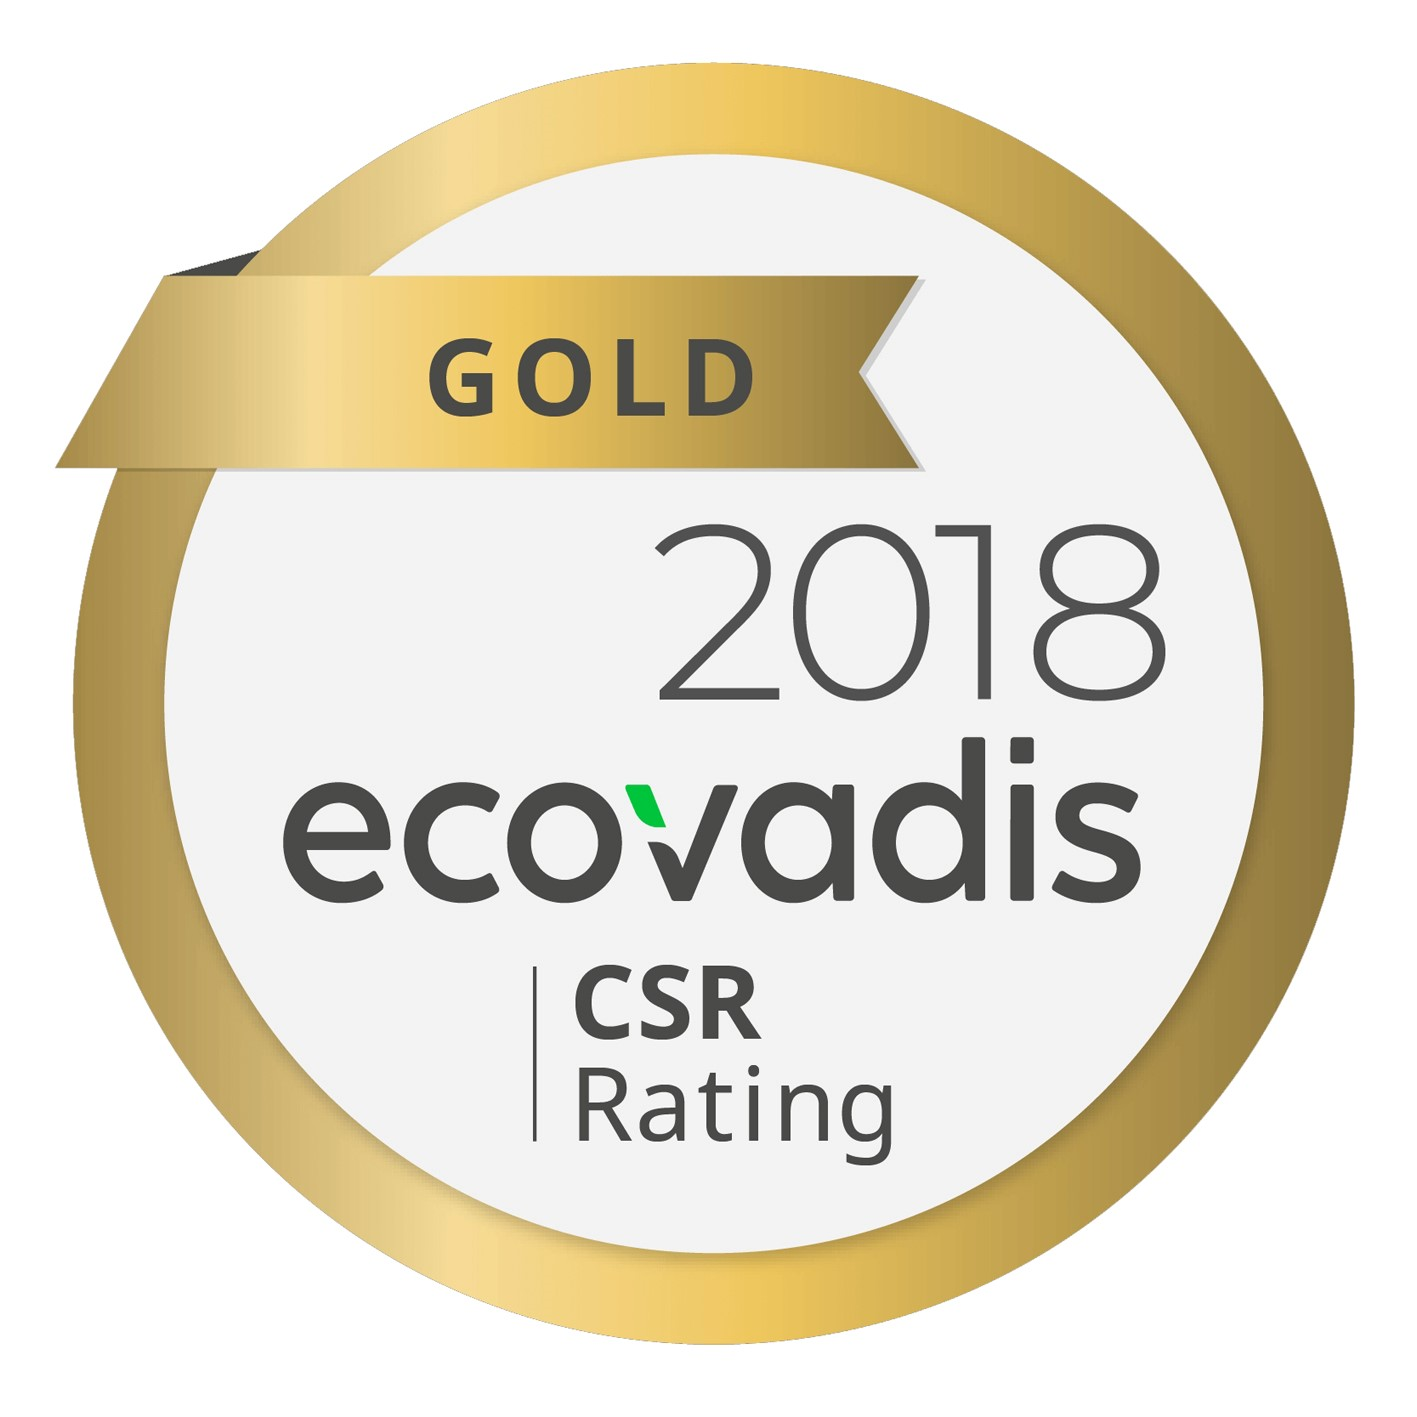 Epson Receives Gold Rating from EcoVadis for Overall Sustainability